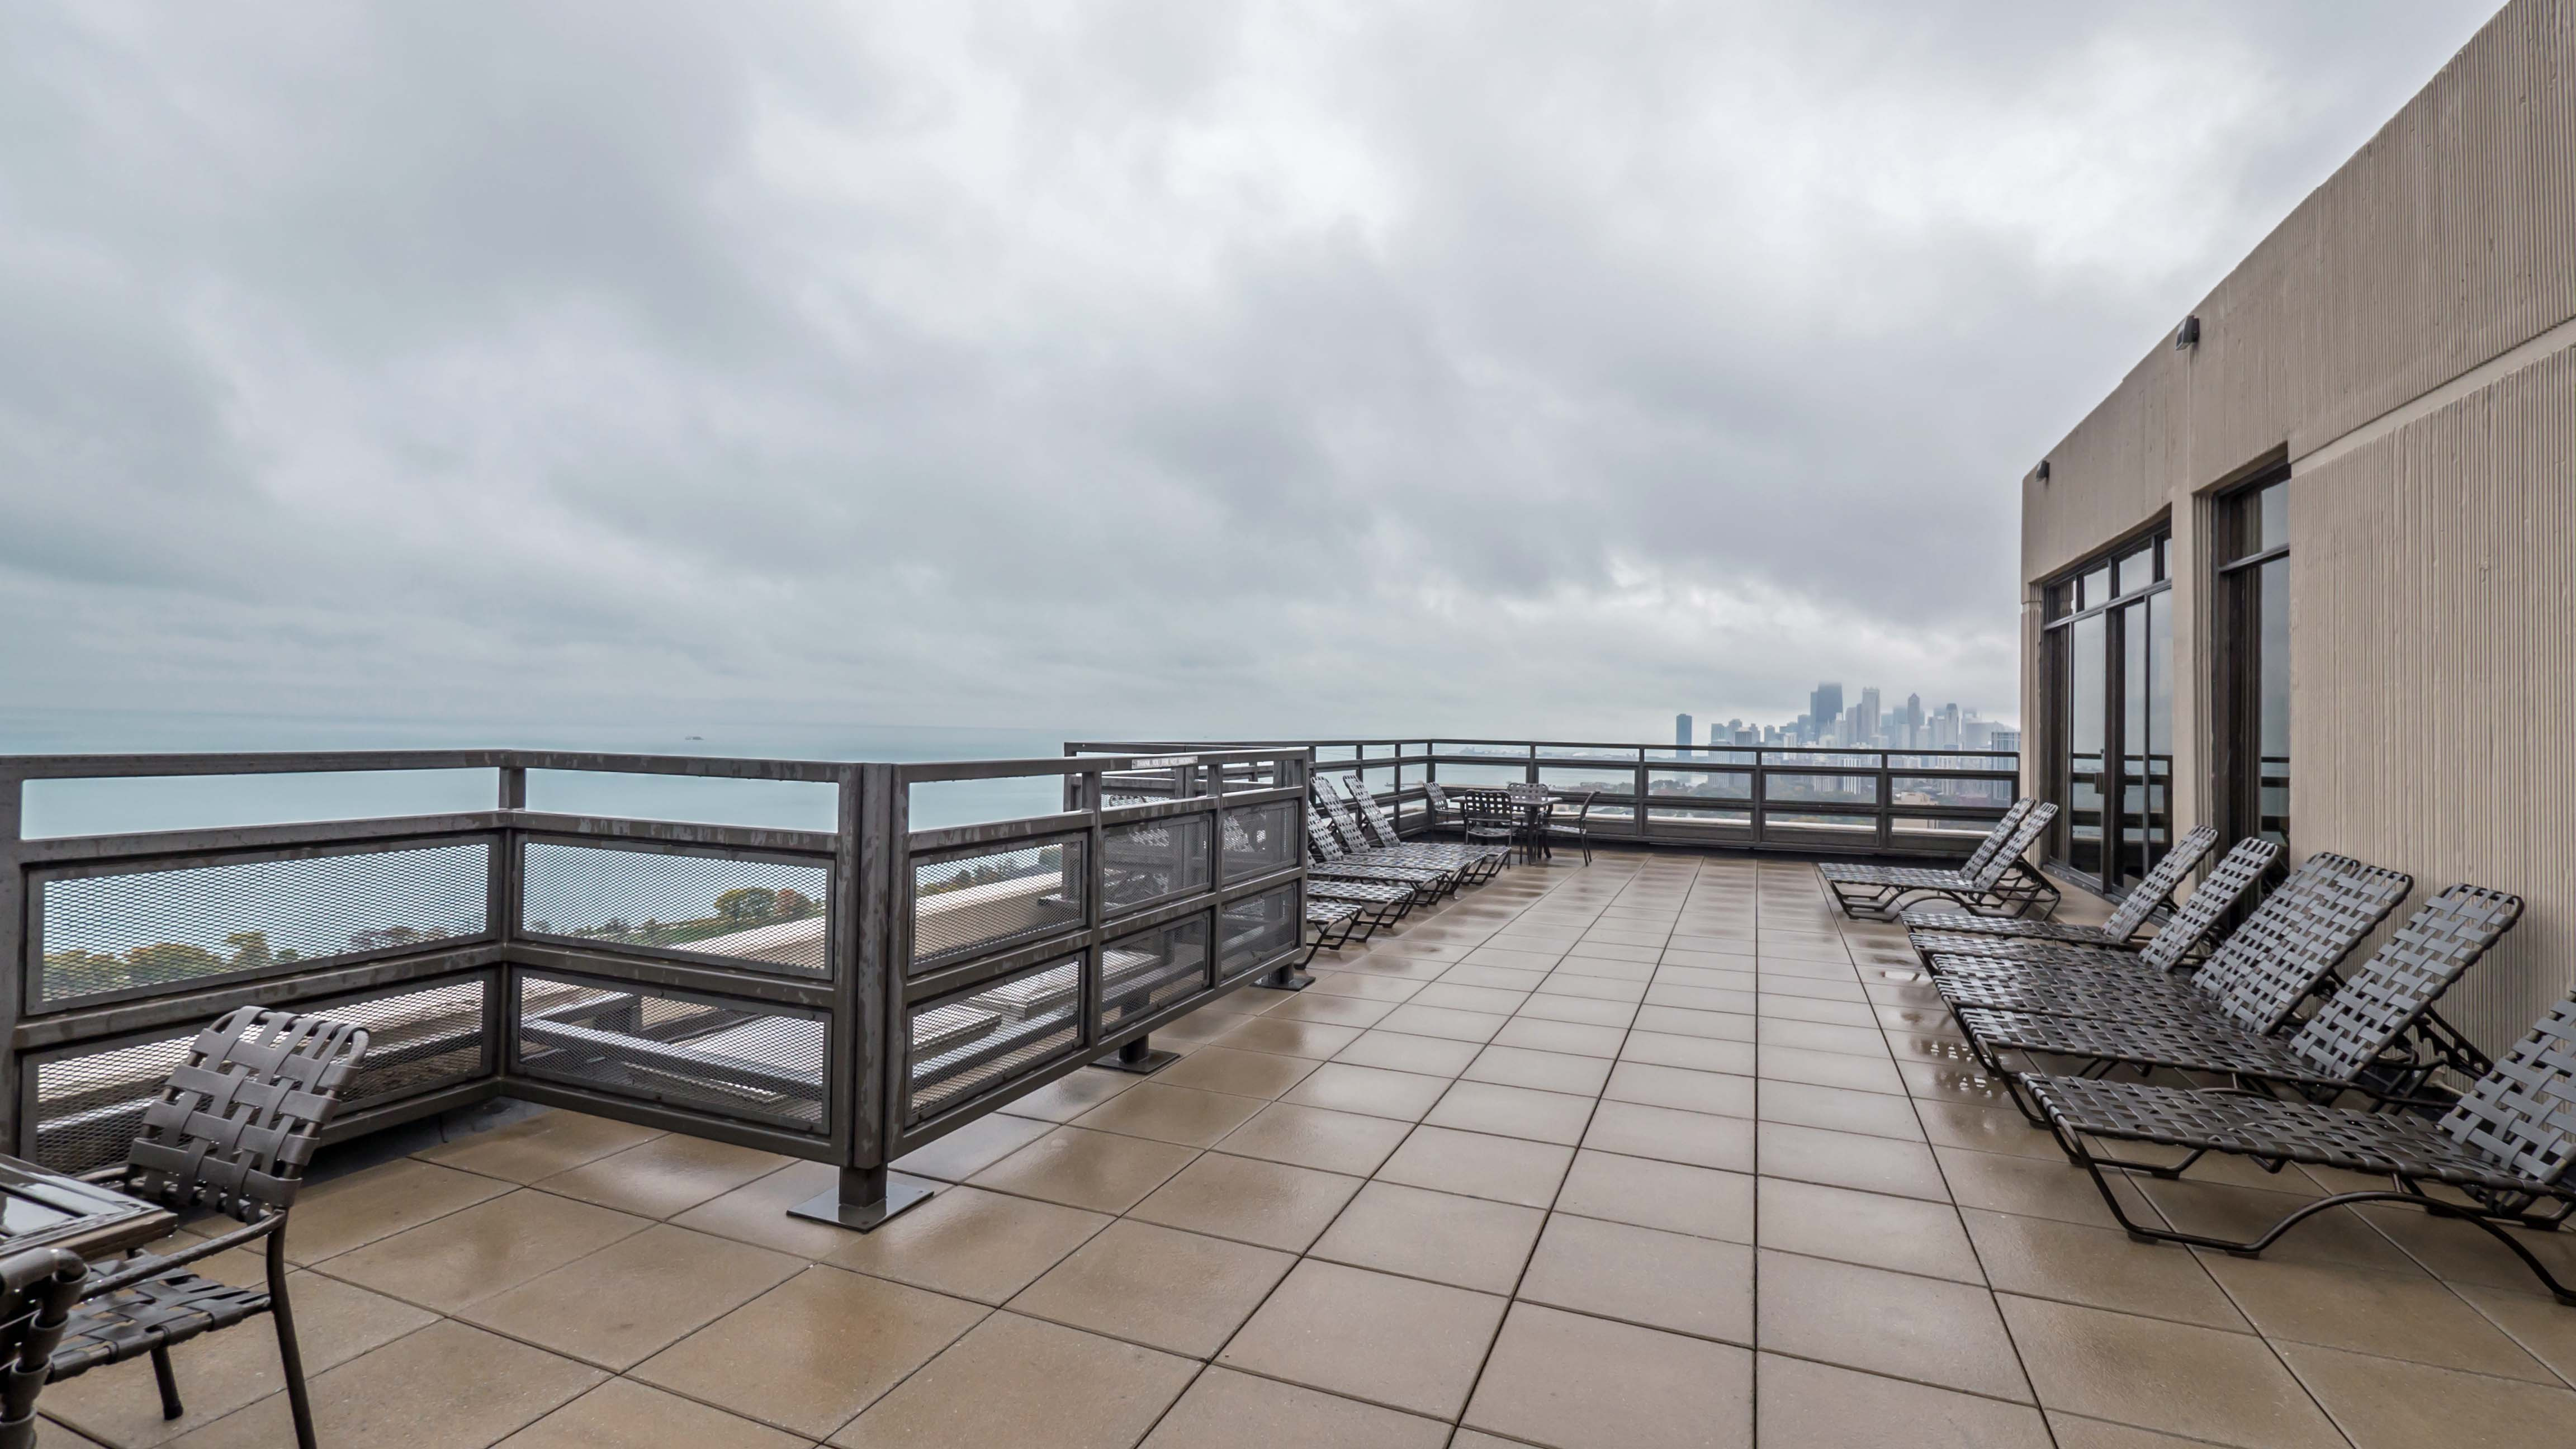 Condominium review 2650 lakeview lincoln park yochicago for Sundeck flooring